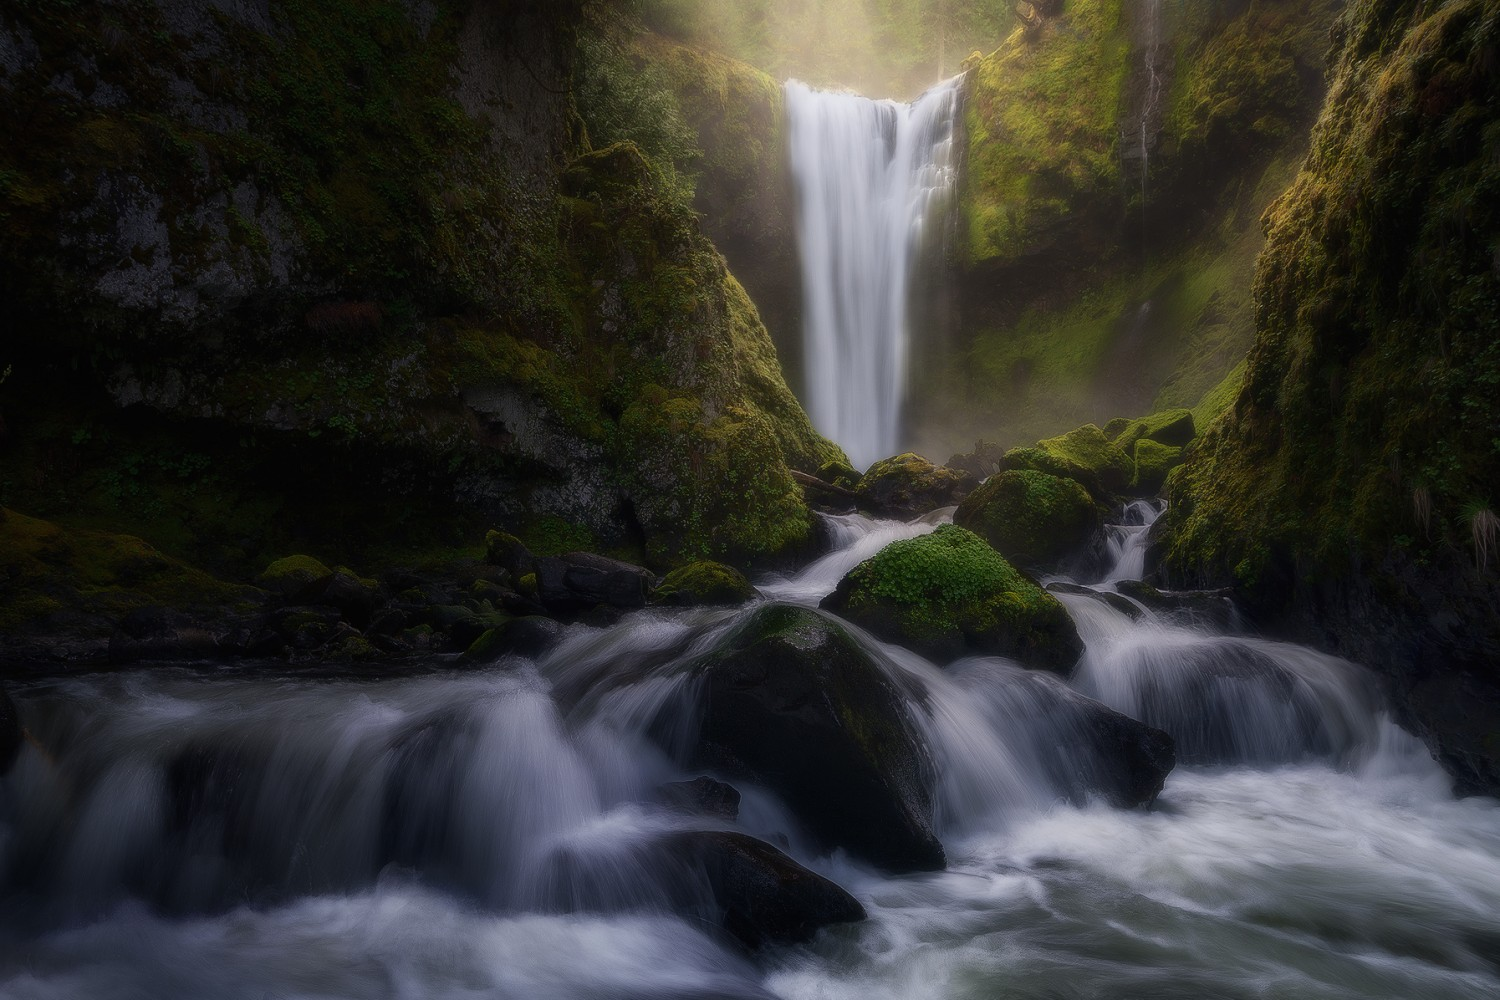 An Insider's Tips for Shooting Waterfalls